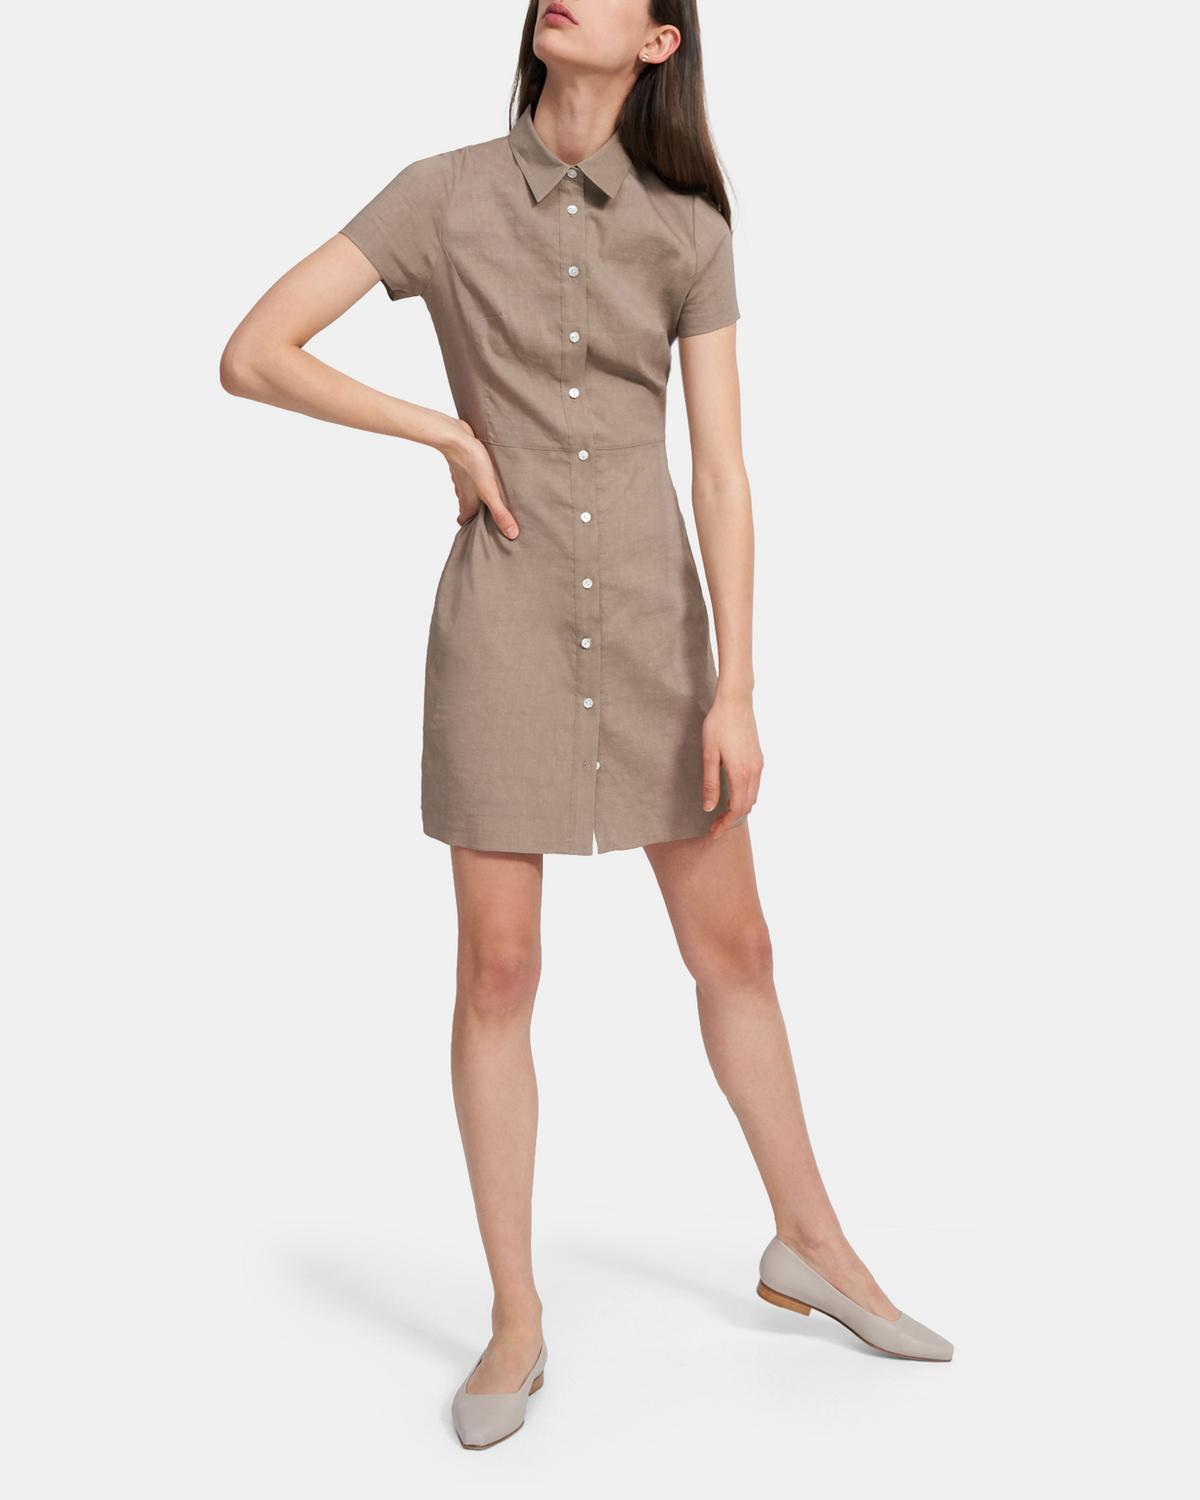 Shirtdress in Good Linen 0 - click to view larger image